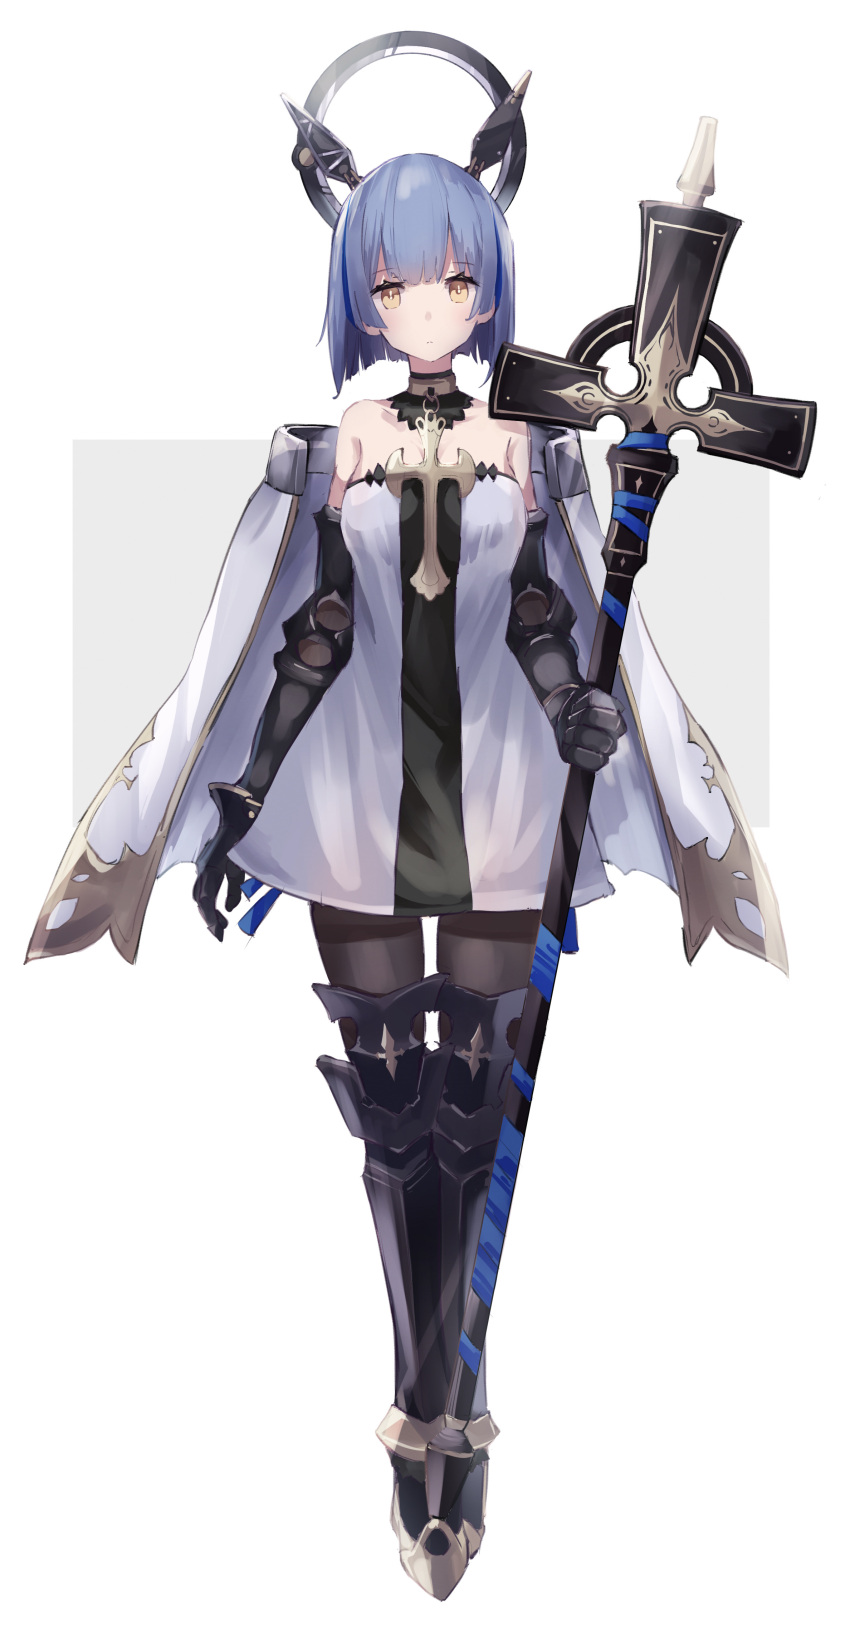 1girl :< absurdres arm_at_side armored_boots azur_lane bangs bare_shoulders black_footwear black_legwear blue_hair blush boots cape closed_mouth cross dress eyebrows_visible_through_hair floating floating_object fujii_shino full_body gascogne_(azur_lane) gauntlets halo halter_dress headgear highres holding looking_back pantyhose short_hair solo standing thigh-highs thigh_boots two-tone_background white_cape white_dress yellow_eyes